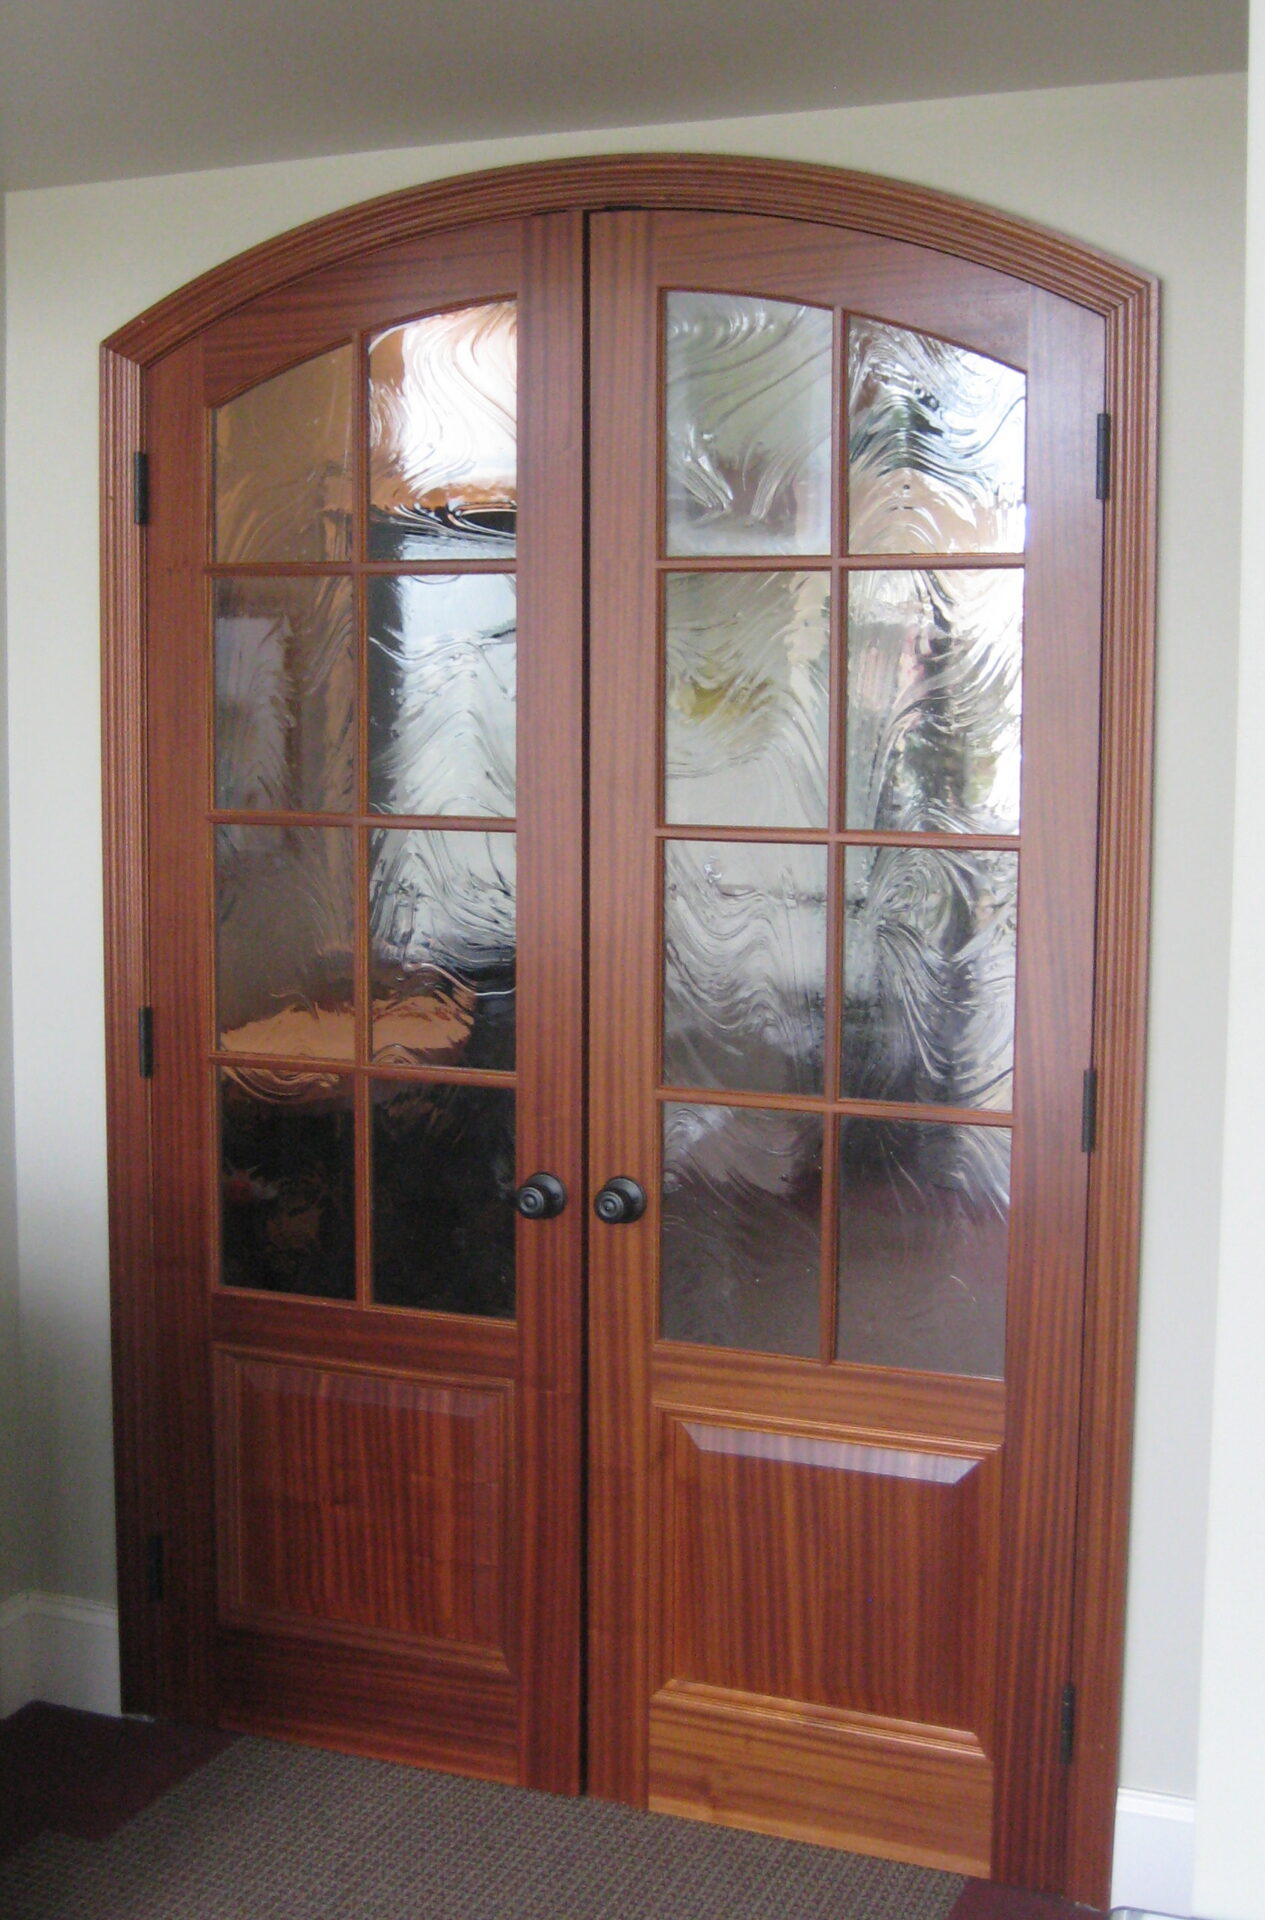 Hardwood interior doors premier custom millwork for Custom interior doors